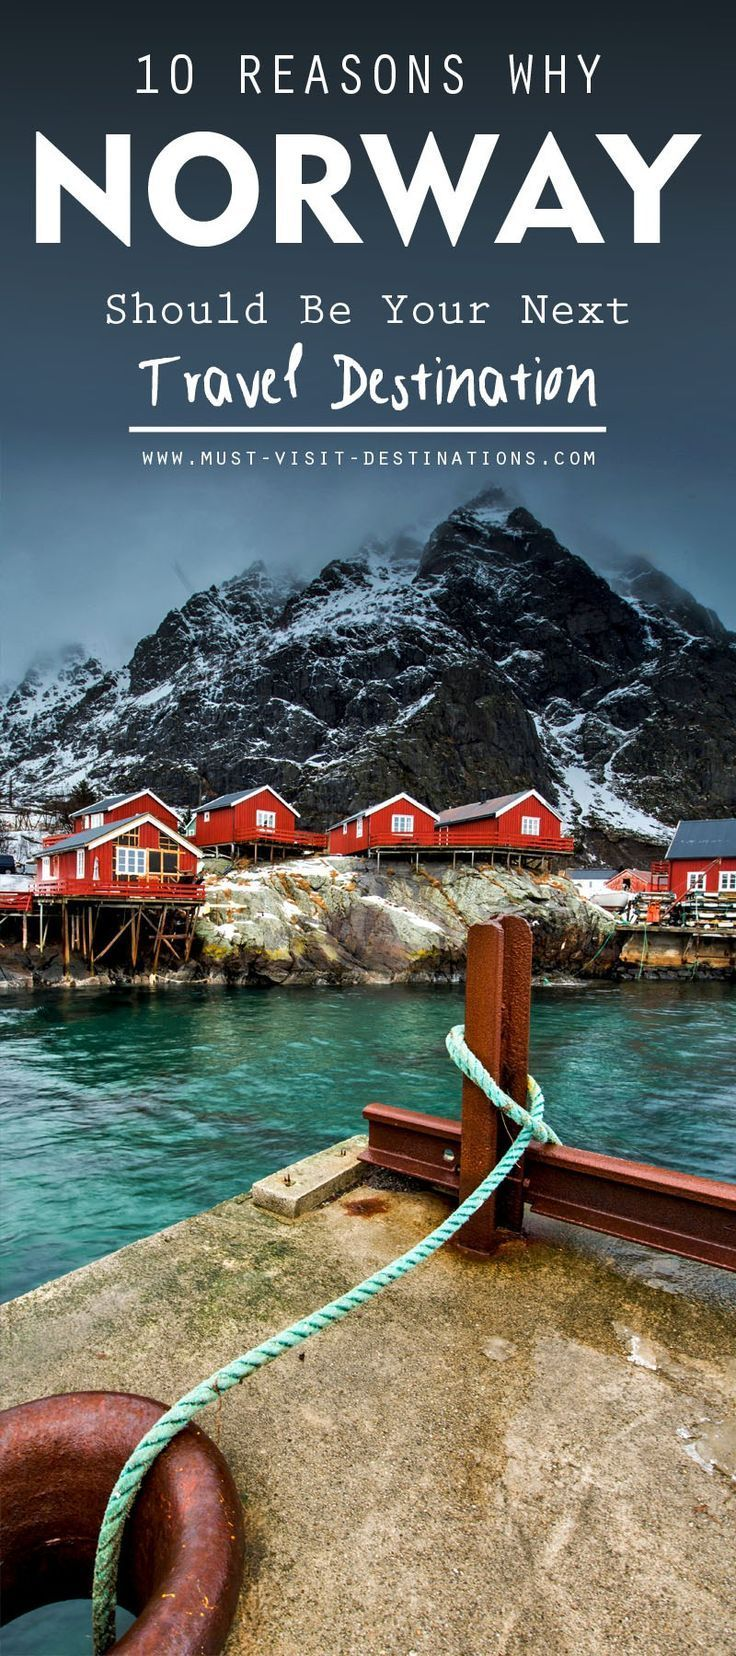 Definitely one of the most intriguing tourist destinations in all of Europe and arguably the world, anyone looking to discover Norway is in for a surprise of a lifetime. We definitely were, and we'd like to share our findings with you. Here are 10 Reasons Why Norway Should Be Your Next Travel Destination